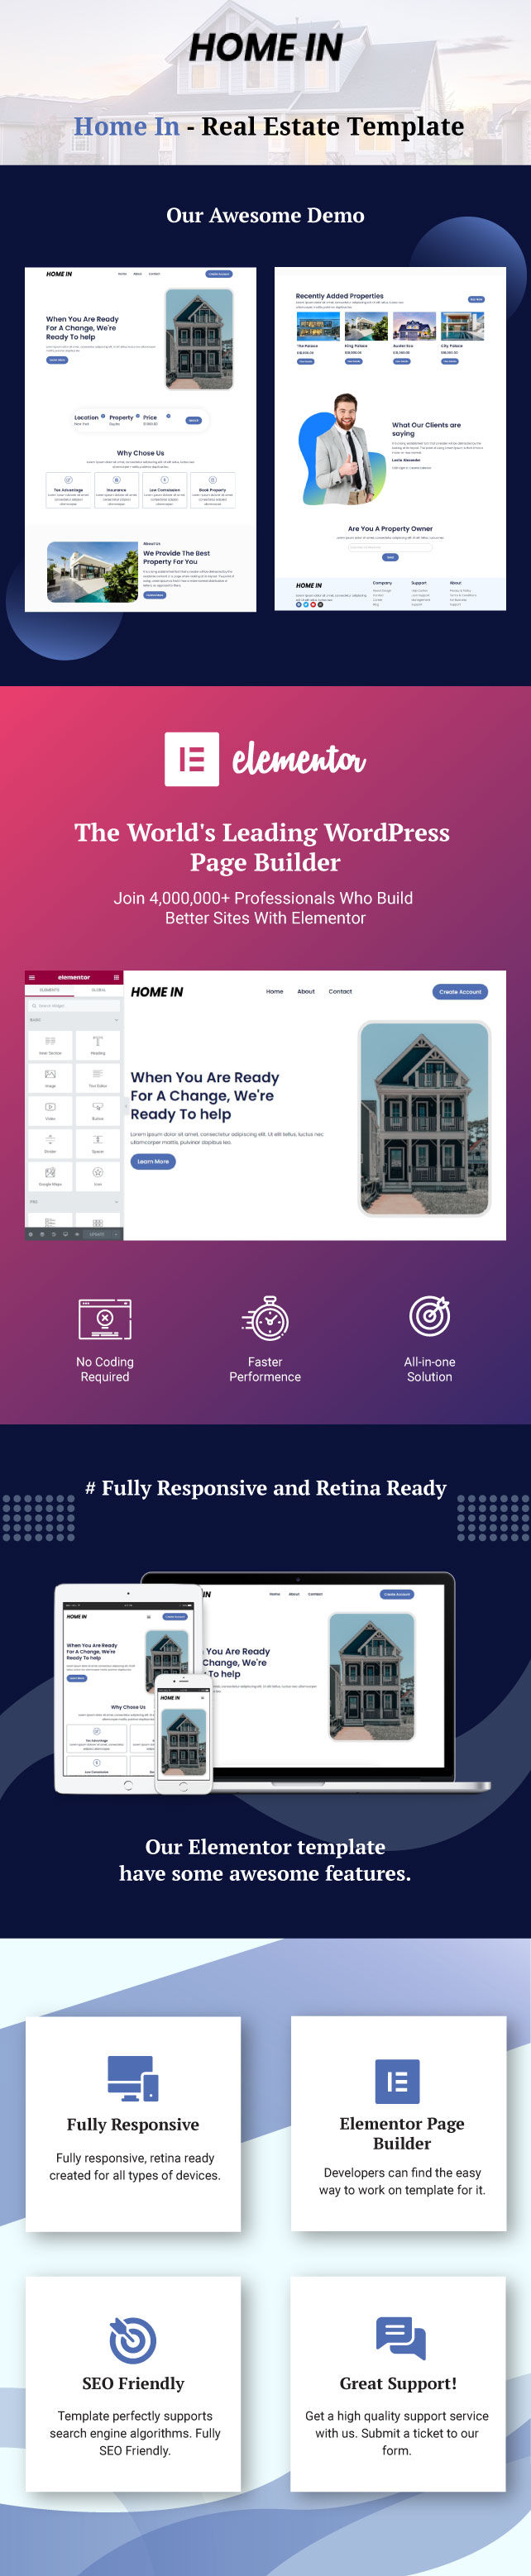 Home-in-real-estate-template